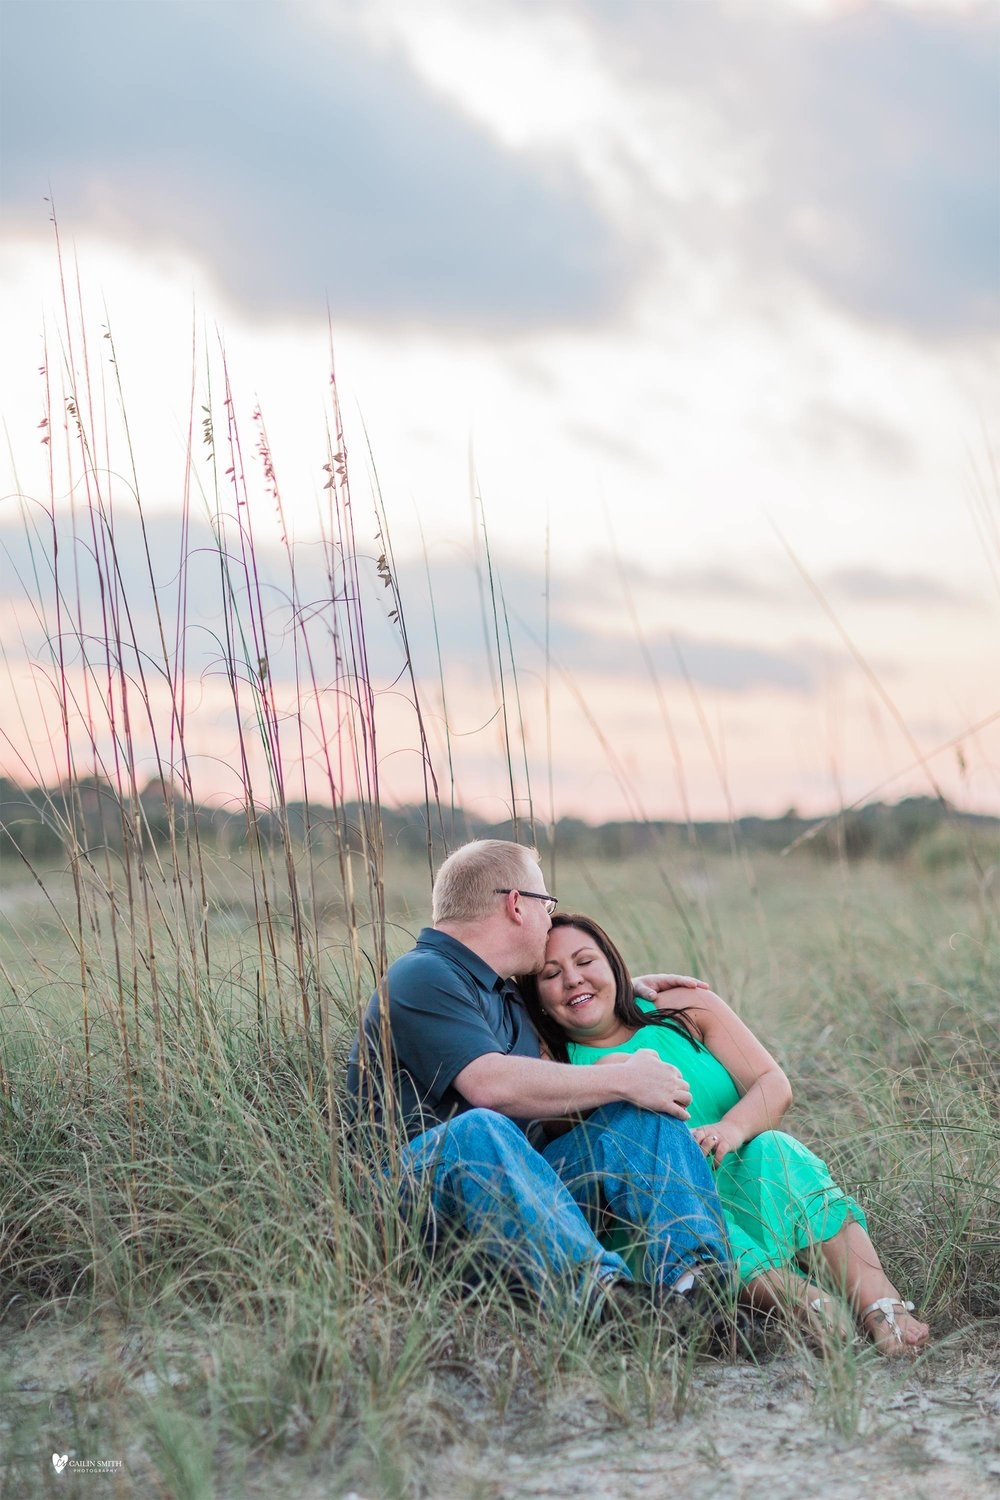 Nikki_Jeremy_Fort_Clinch_Engagement_Photography_12.jpg